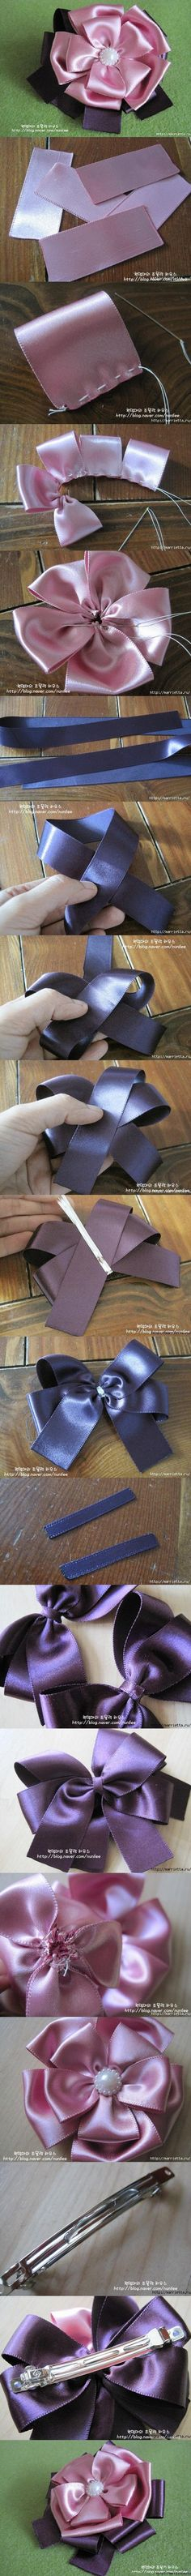 Hair bows, but would make great bows for gift packages. by eddie Accessoires maken Accessoires diy Diy Hair Bows, Diy Bow, Diy Ribbon, Ribbon Crafts, Flower Crafts, Ribbon Bows, Ribbon Flower, Ribbon Hair, Ribbons